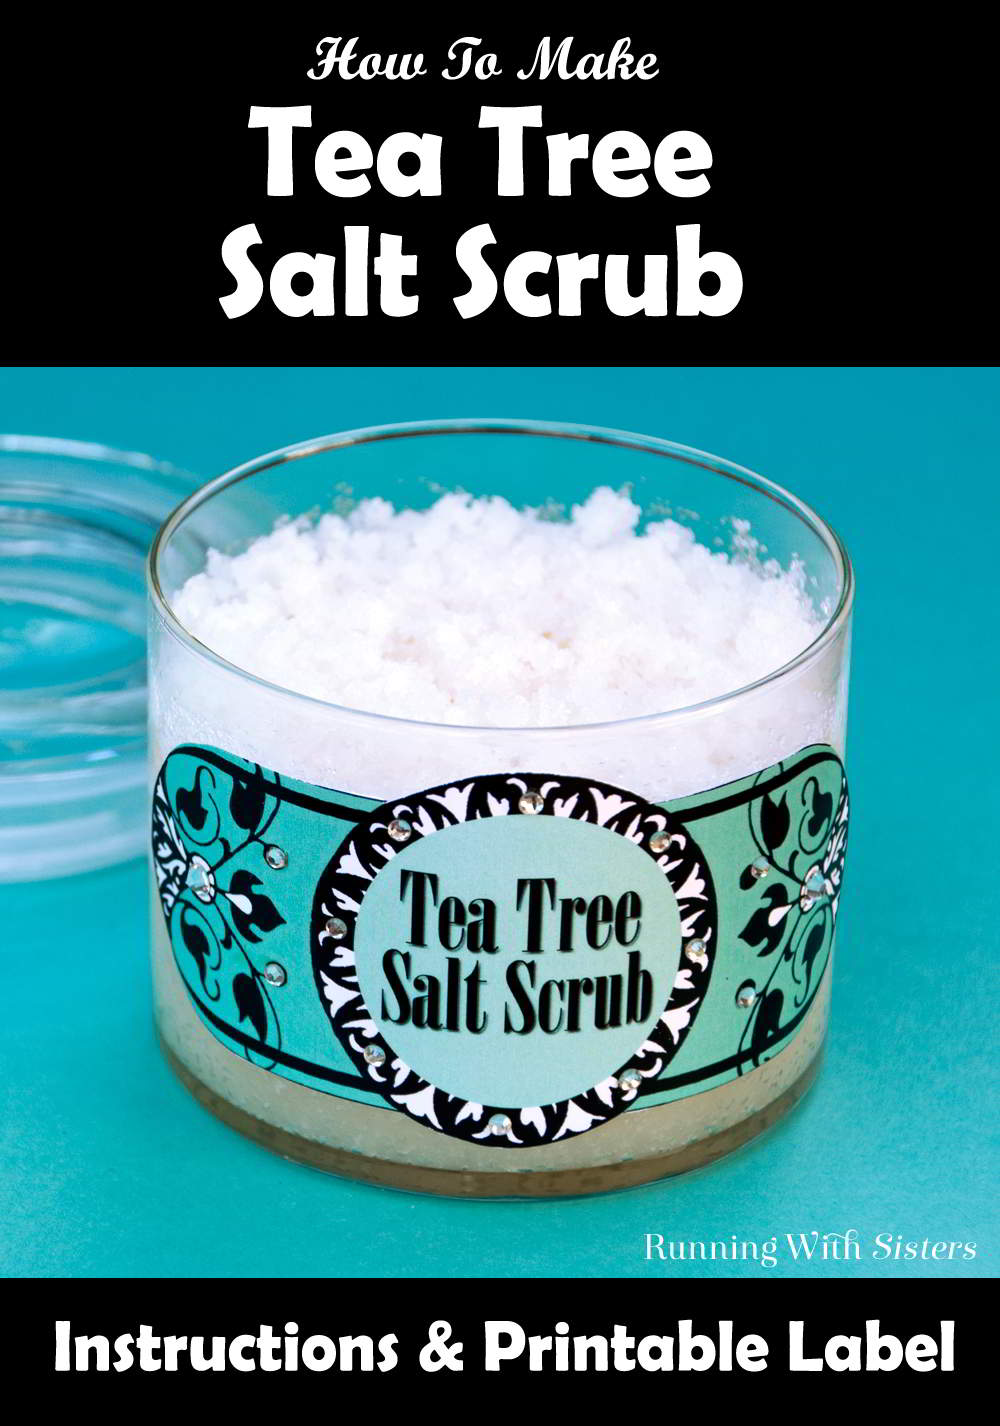 Make an easy gift with this Salt Scrub spa craft complete with recipe and printable label.